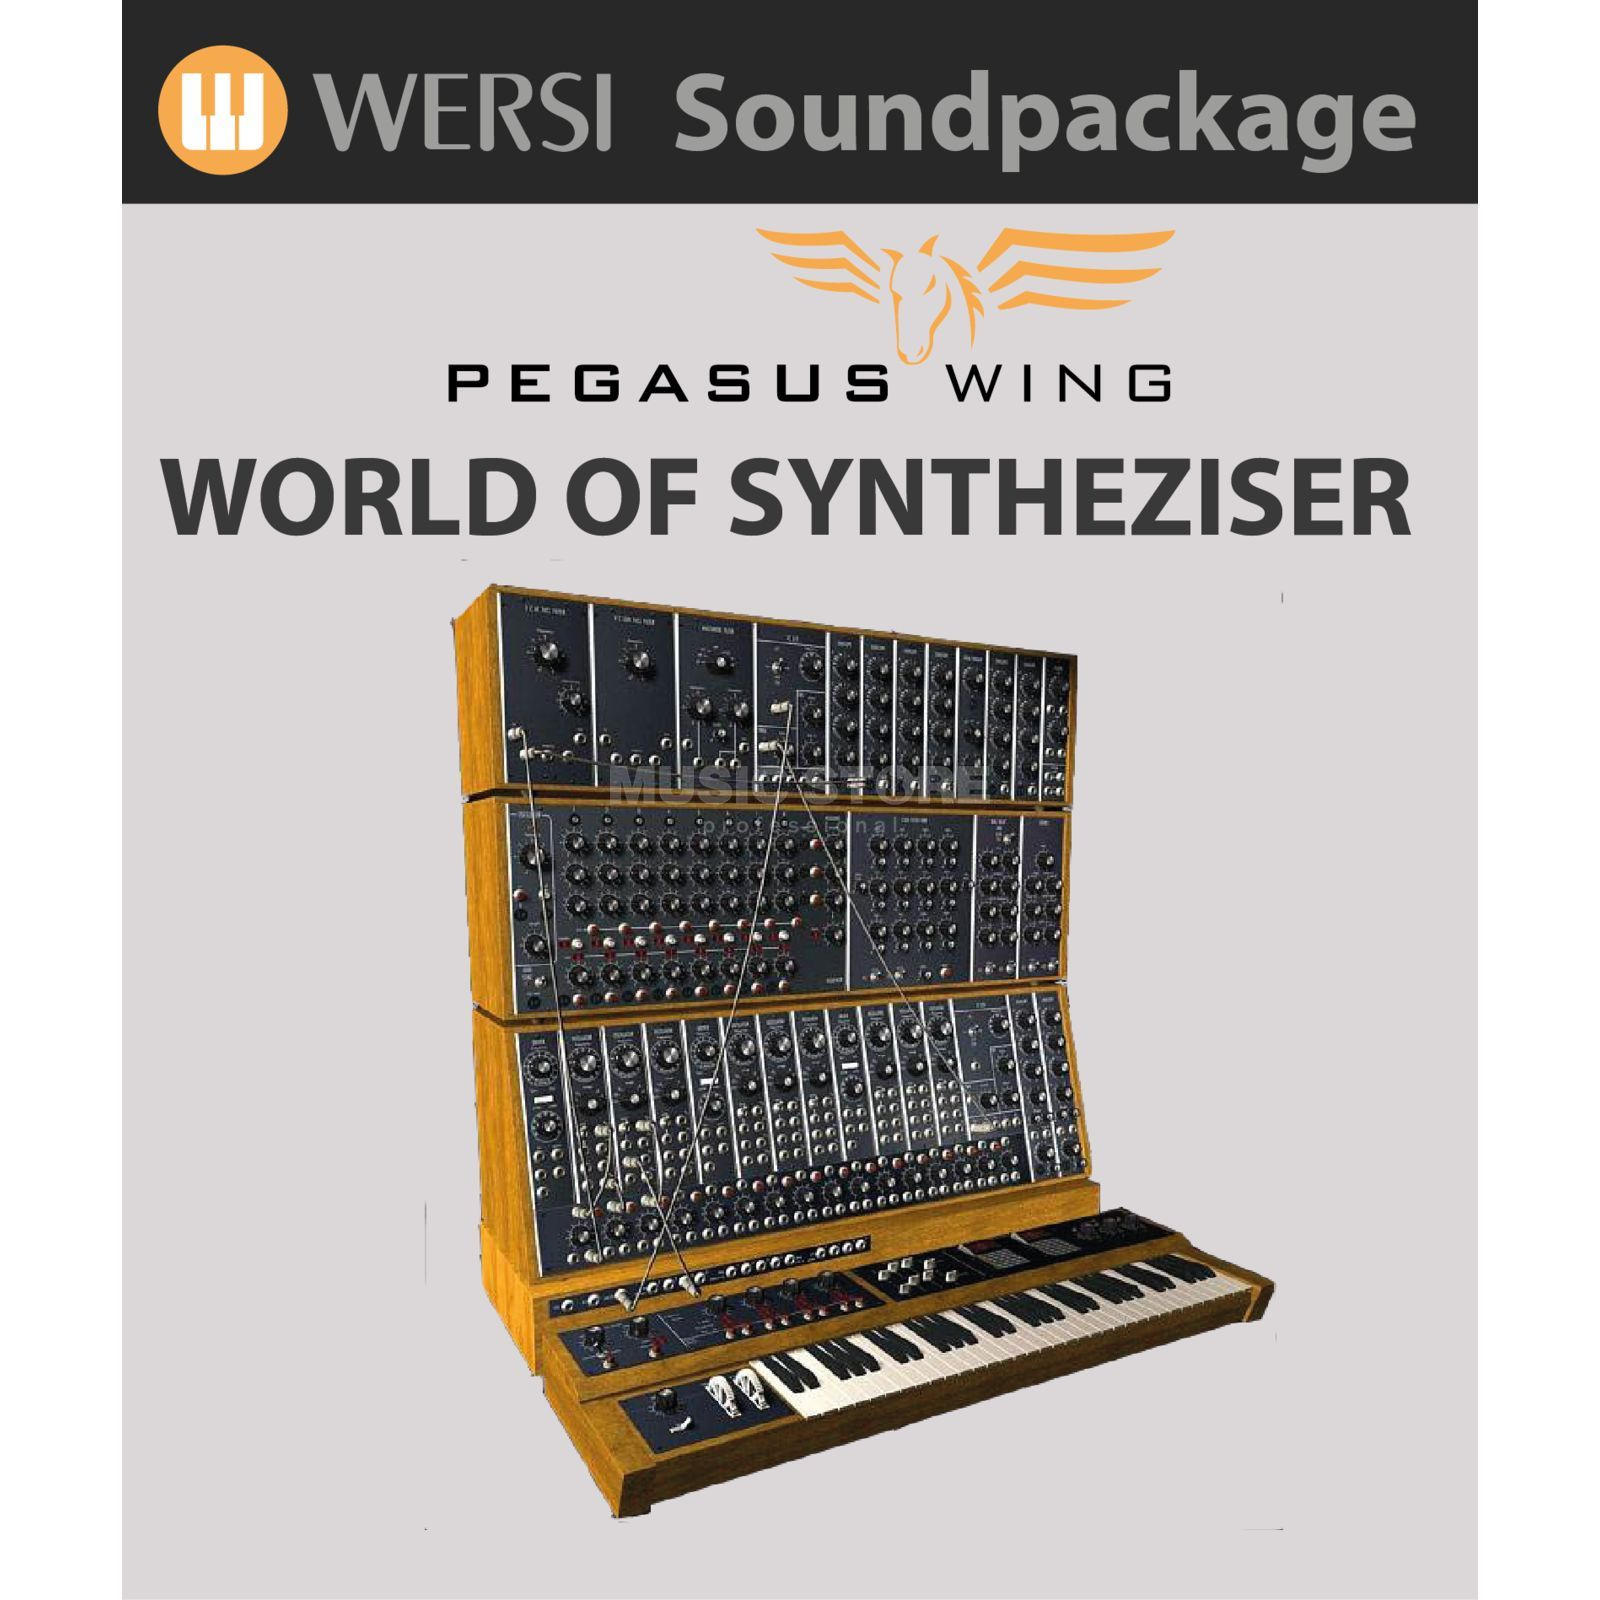 Wersi World of Synthesizer Soundpackage for Pegasus Wing Produktbillede